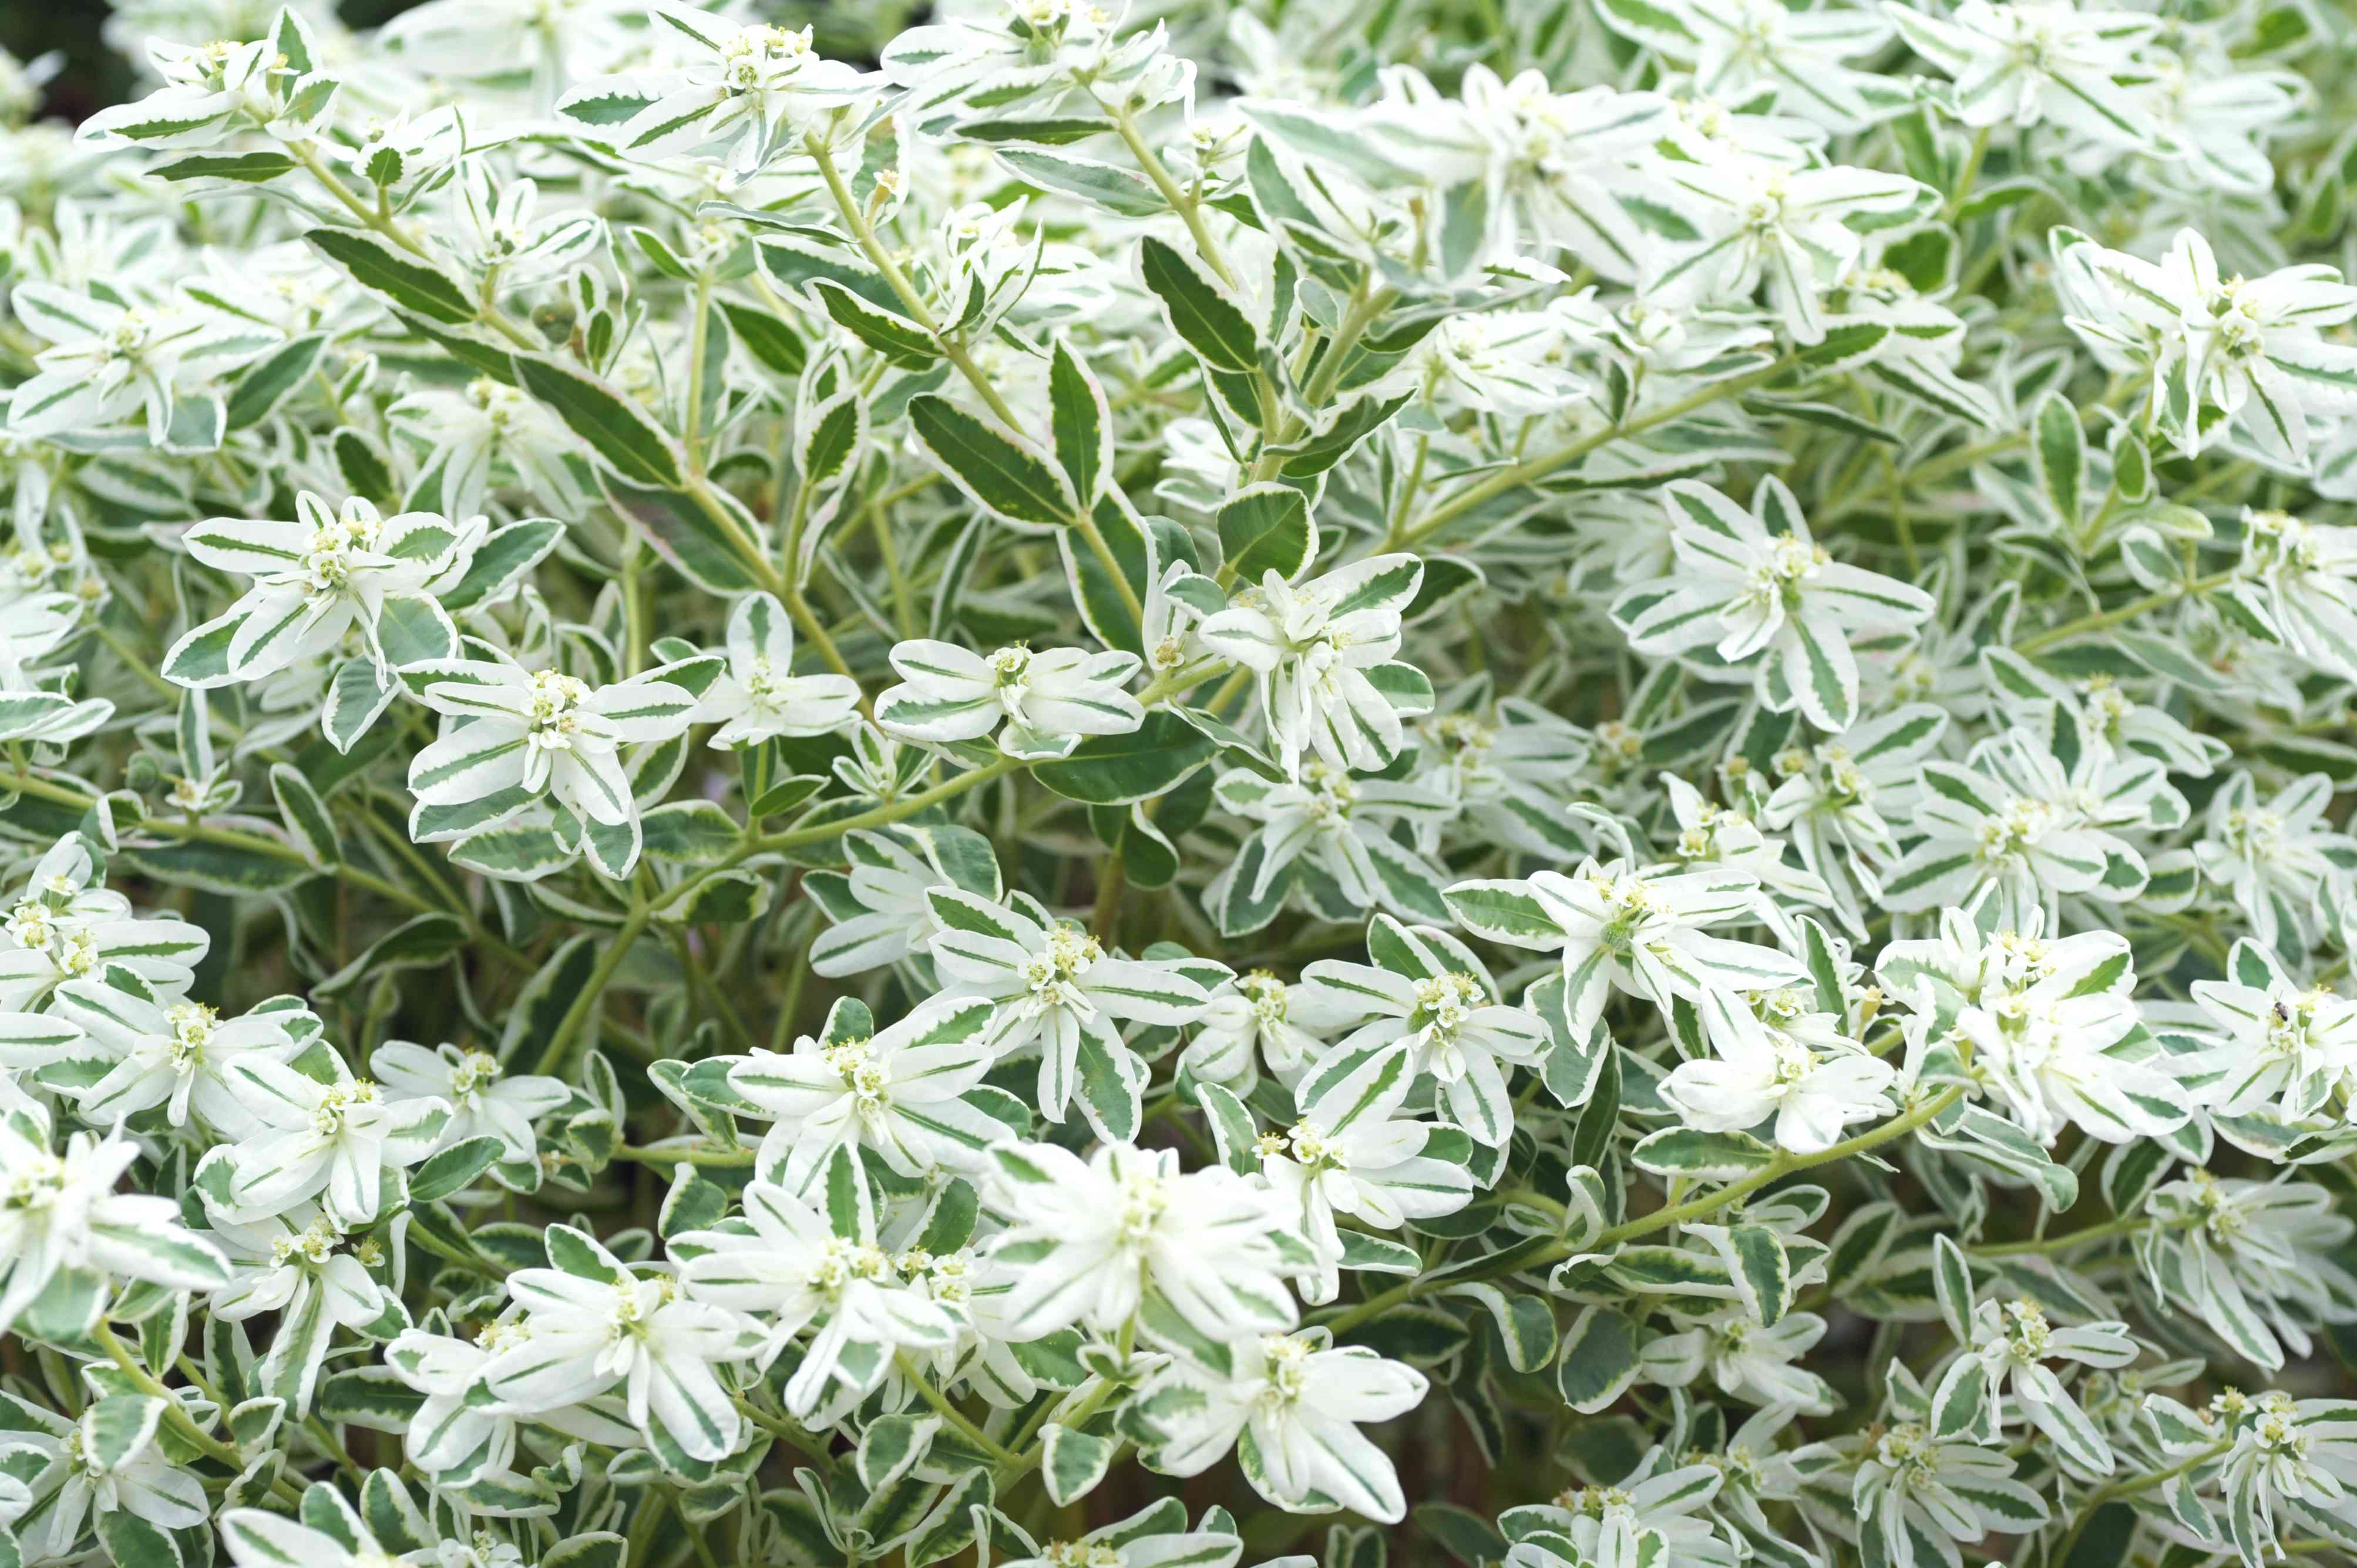 Snow on the mountain plant with white and green striped flowers and bracts